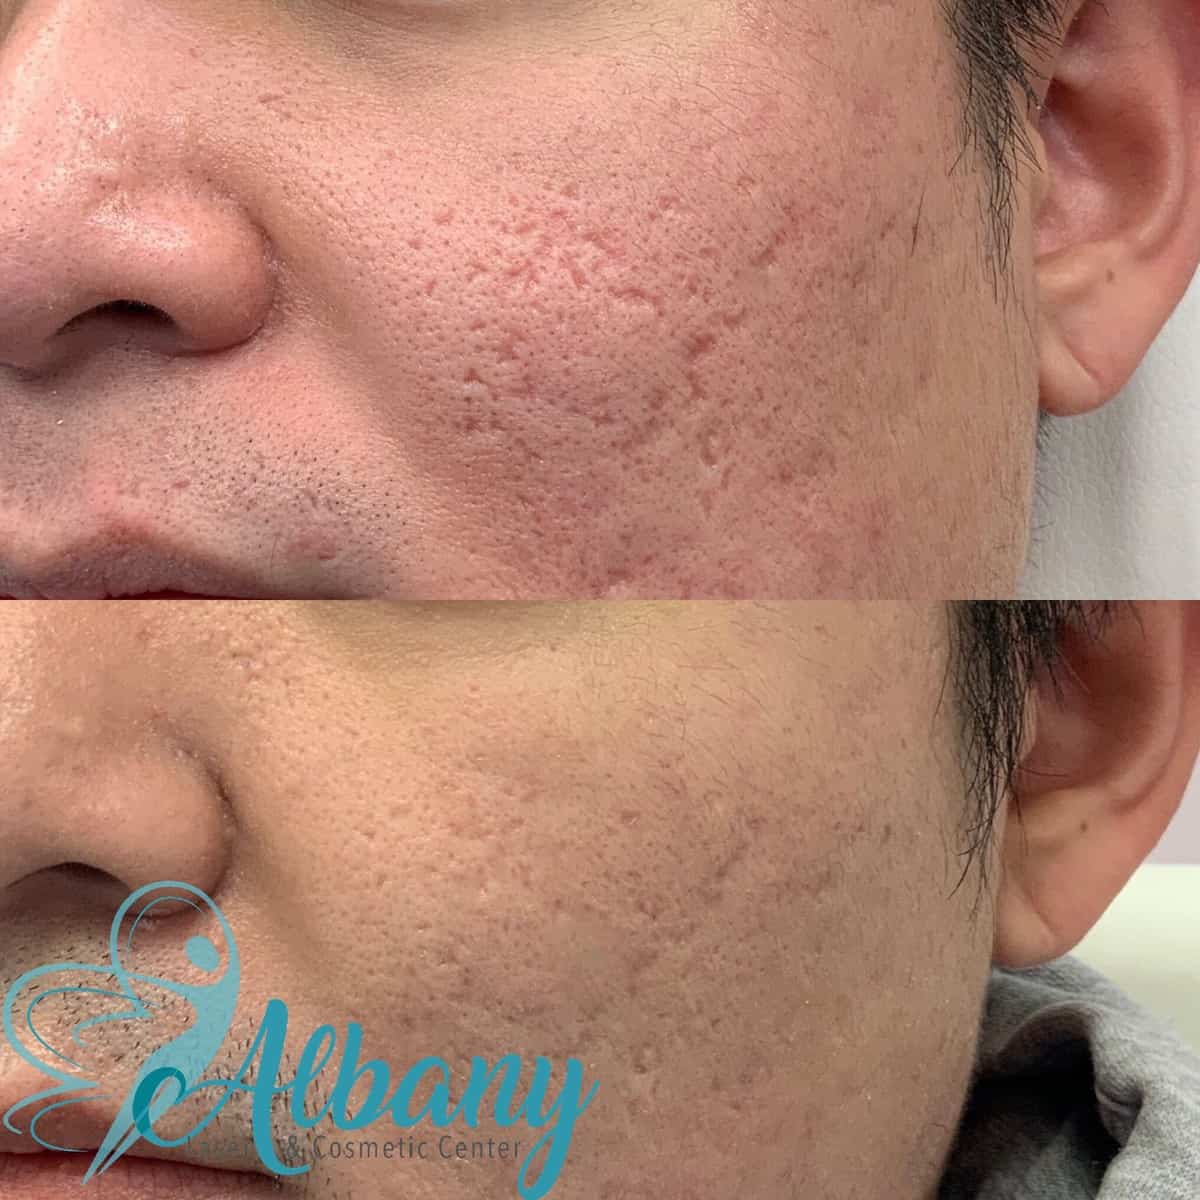 Acne Scars treatment with Fractora Microneedling